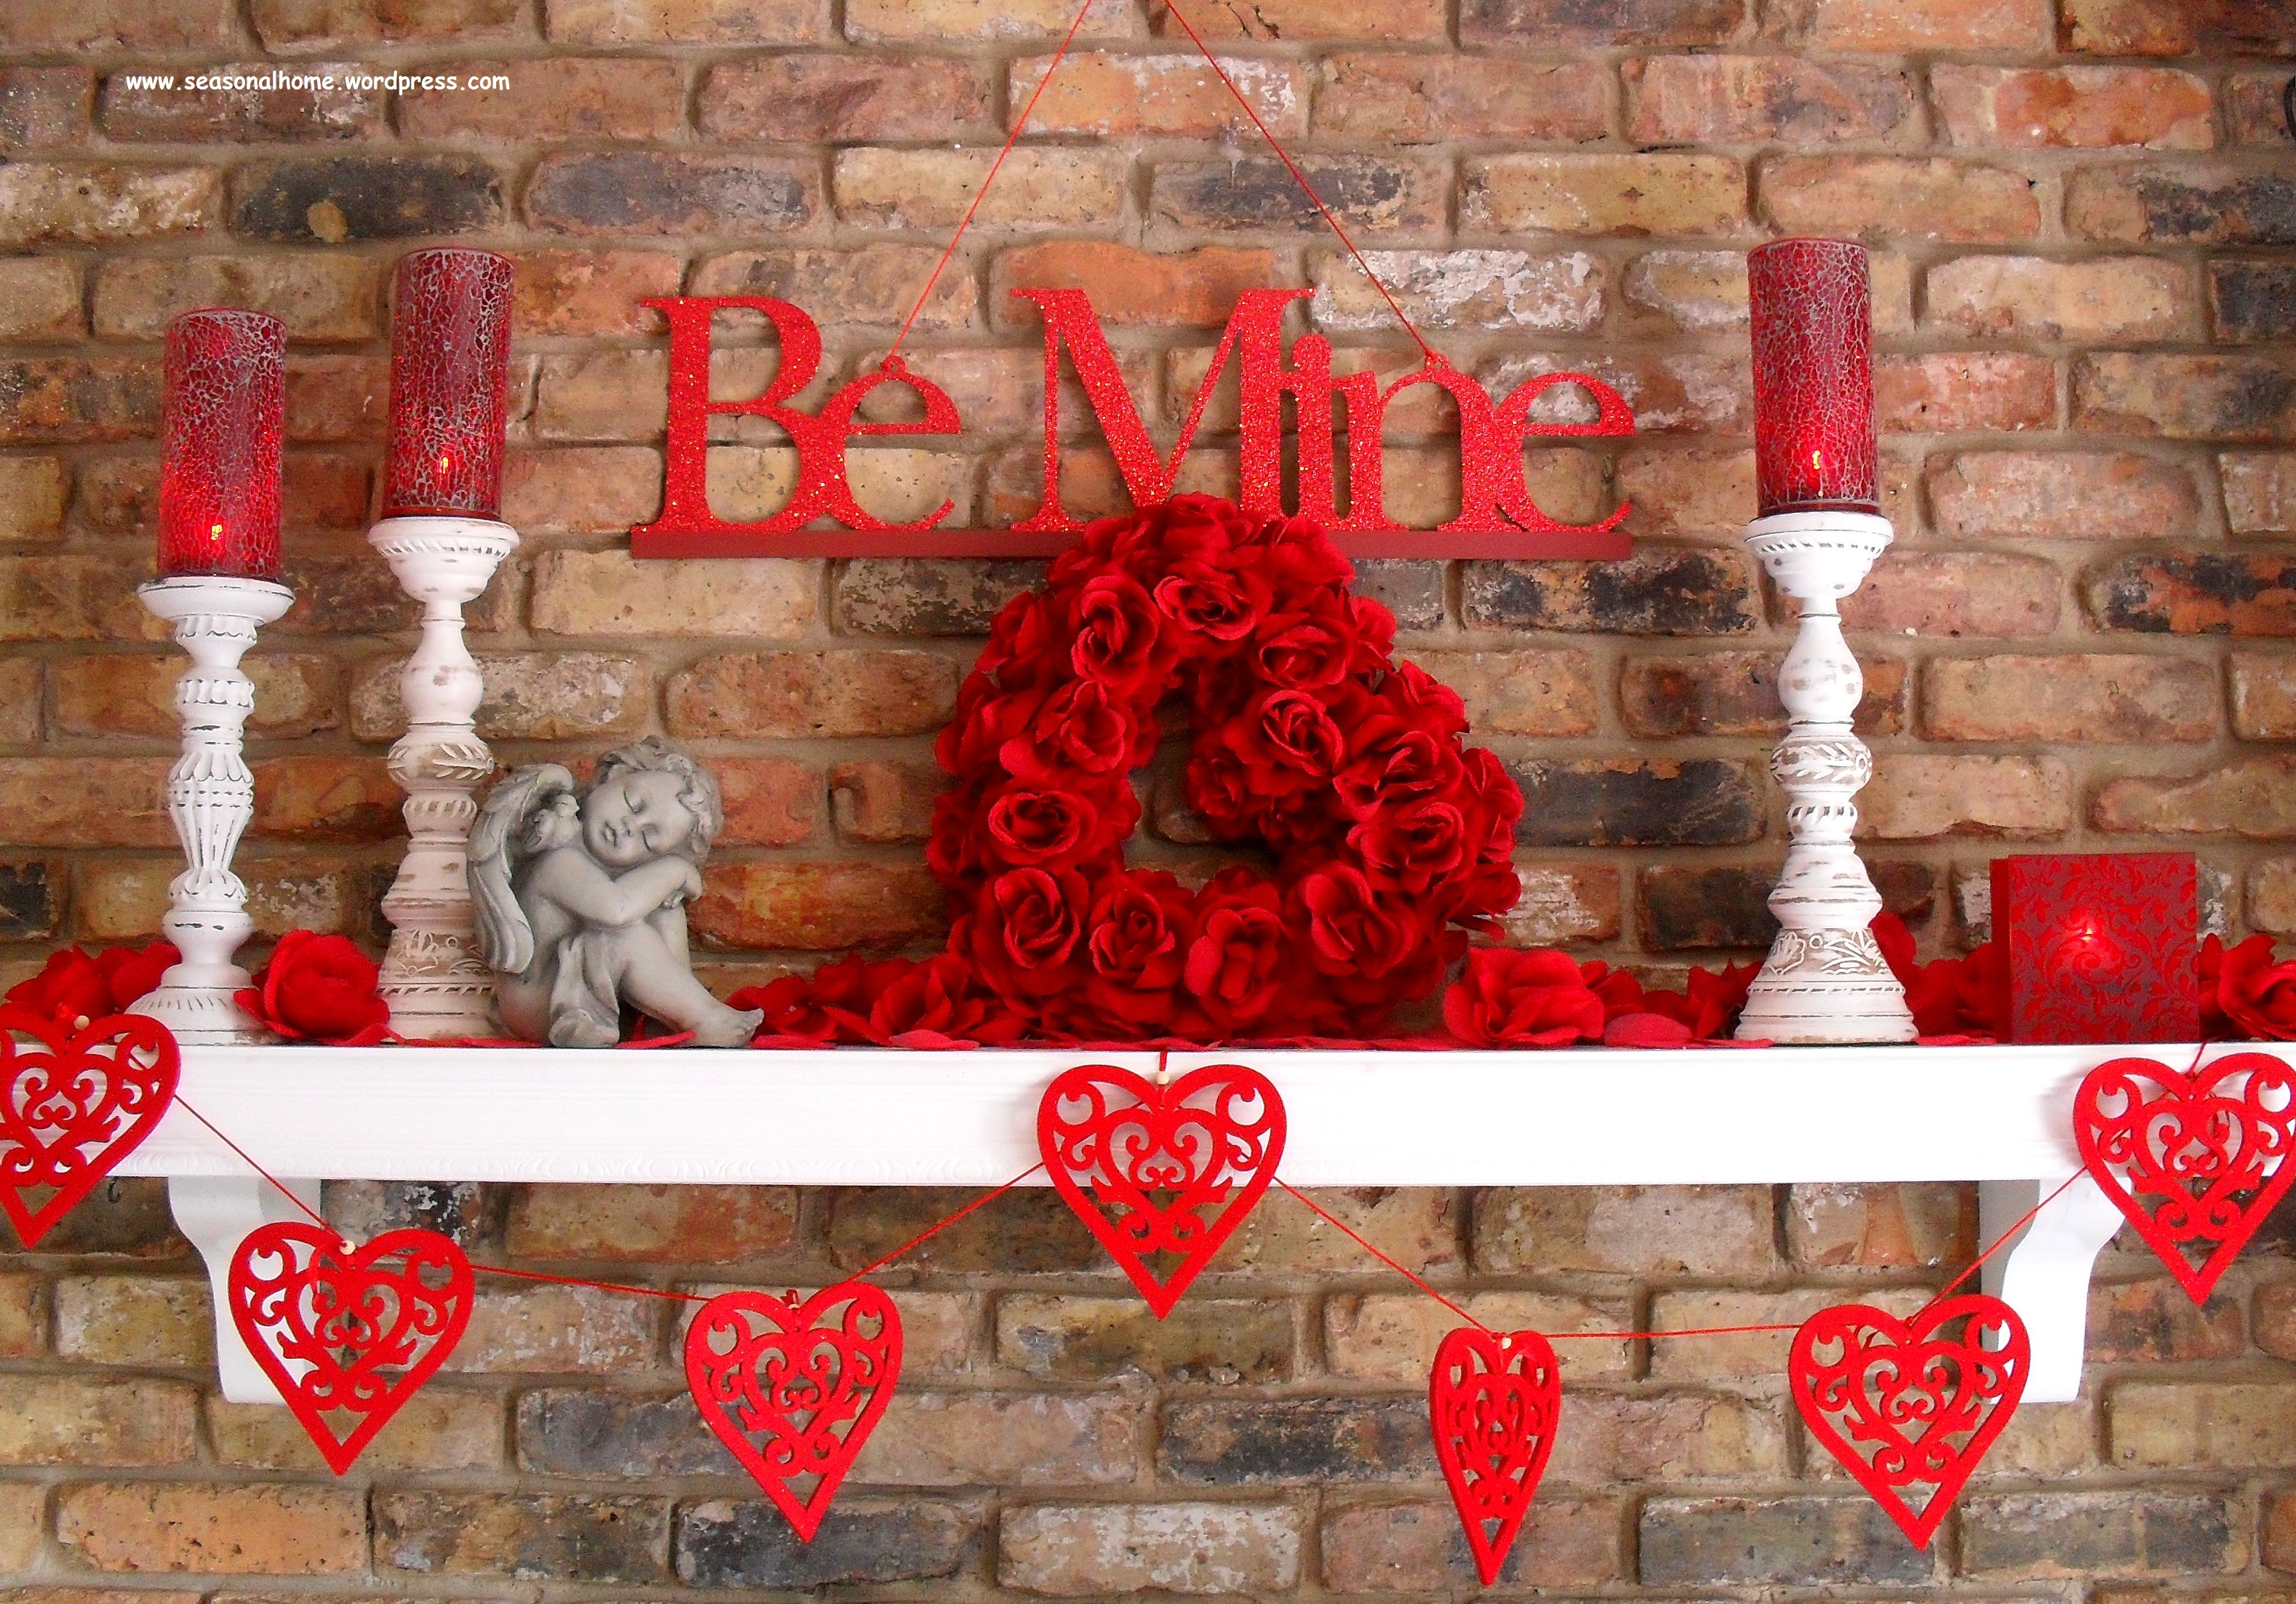 Valentines Day Low Cost Ideas Title And Wm Decorations: Inexpensive Decorations For St. Valentine's Day « The